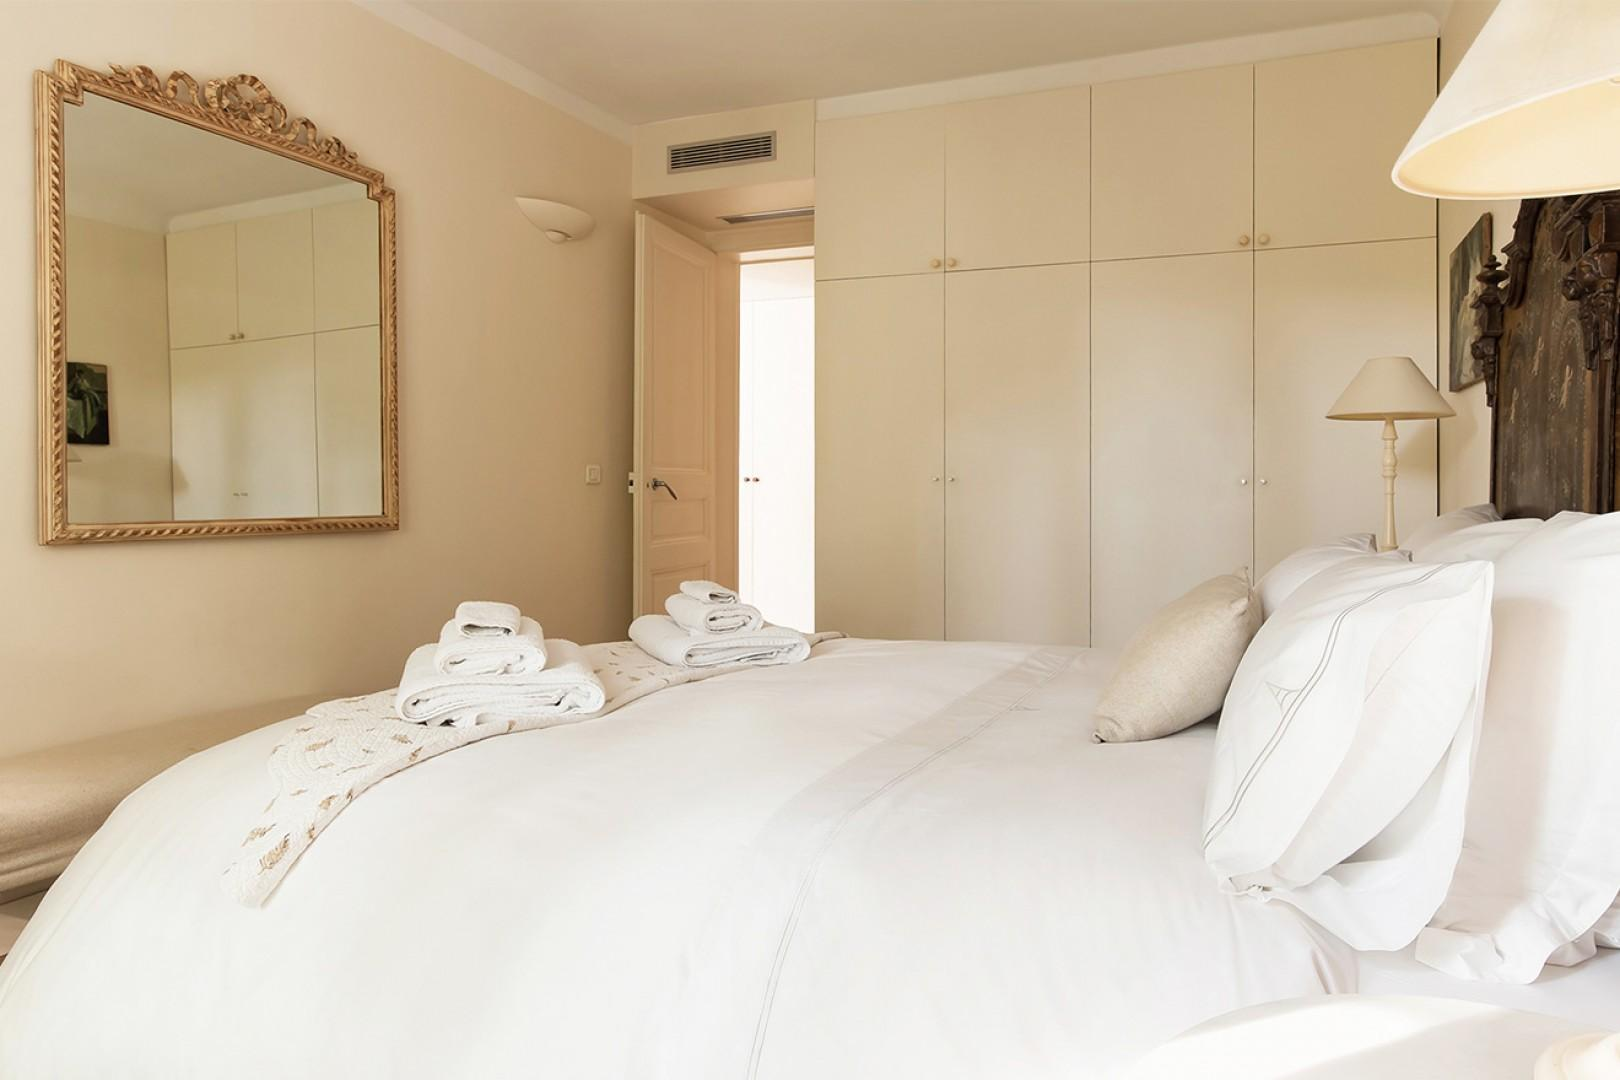 Large closets provide lots of extra storage space.